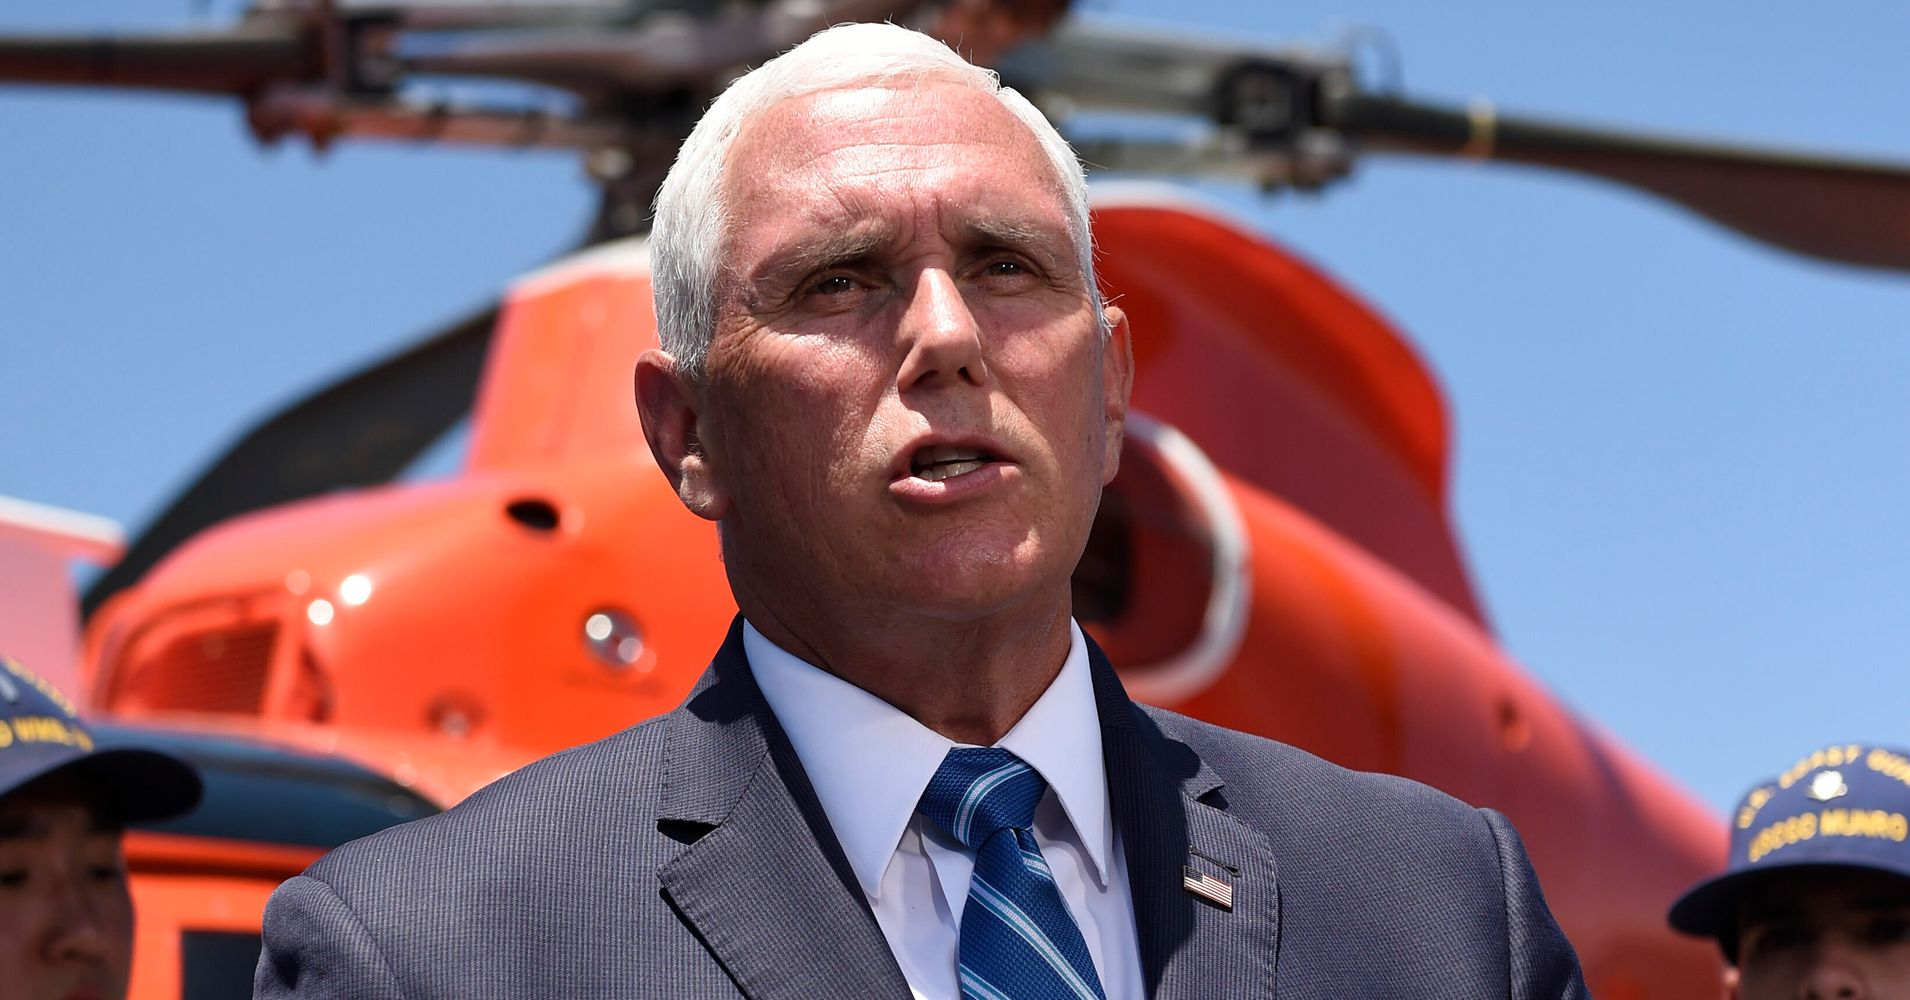 Westlake Legal Group 5d2a19aa260000490004459c Mike Pence 'Can't Account For' Photo Of Dismal Migrant Detention Conditions